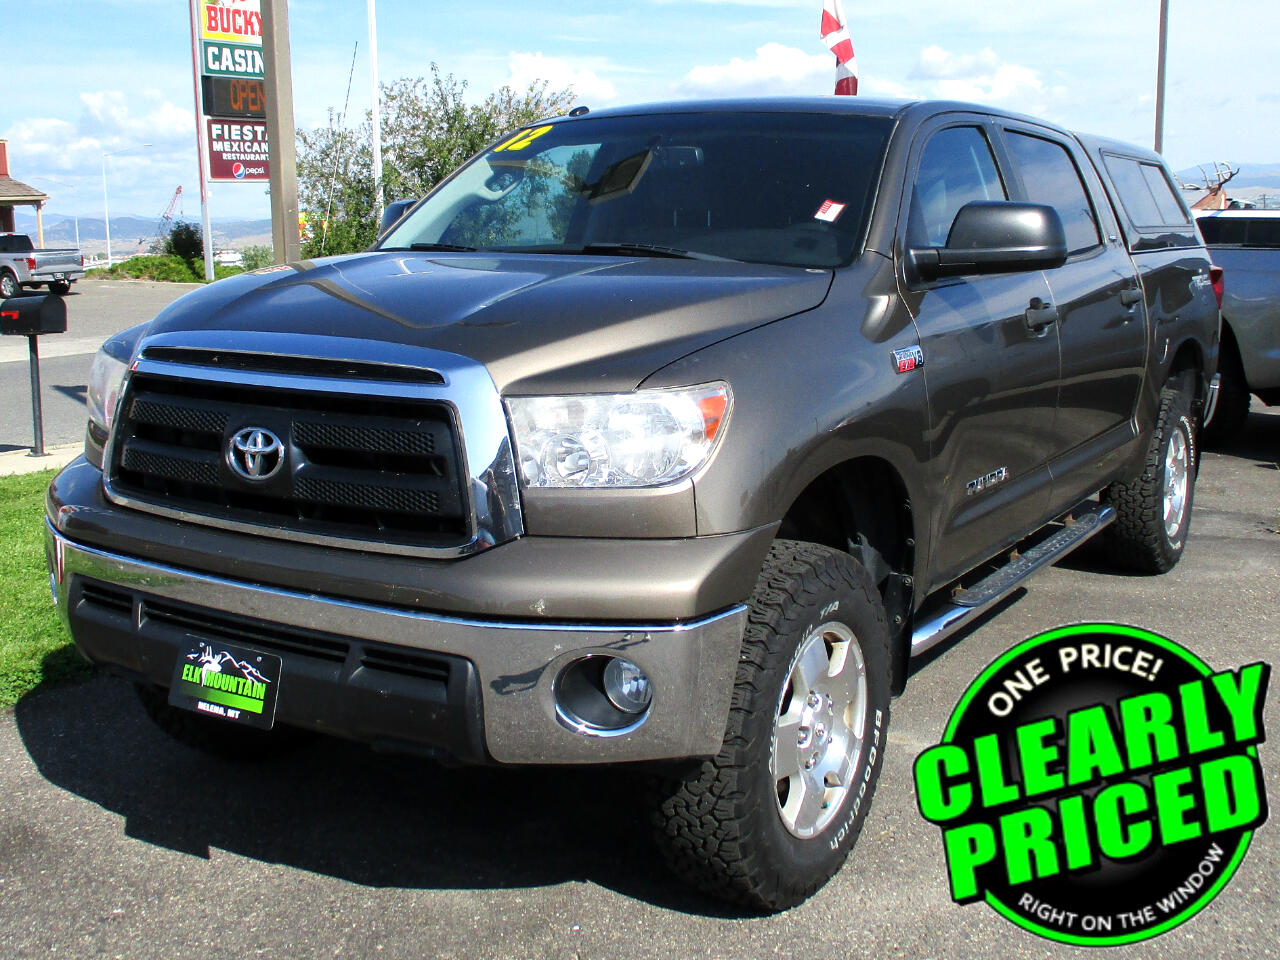 2012 Toyota Tundra Tundra-Grade CrewMax 5.7L 4WD